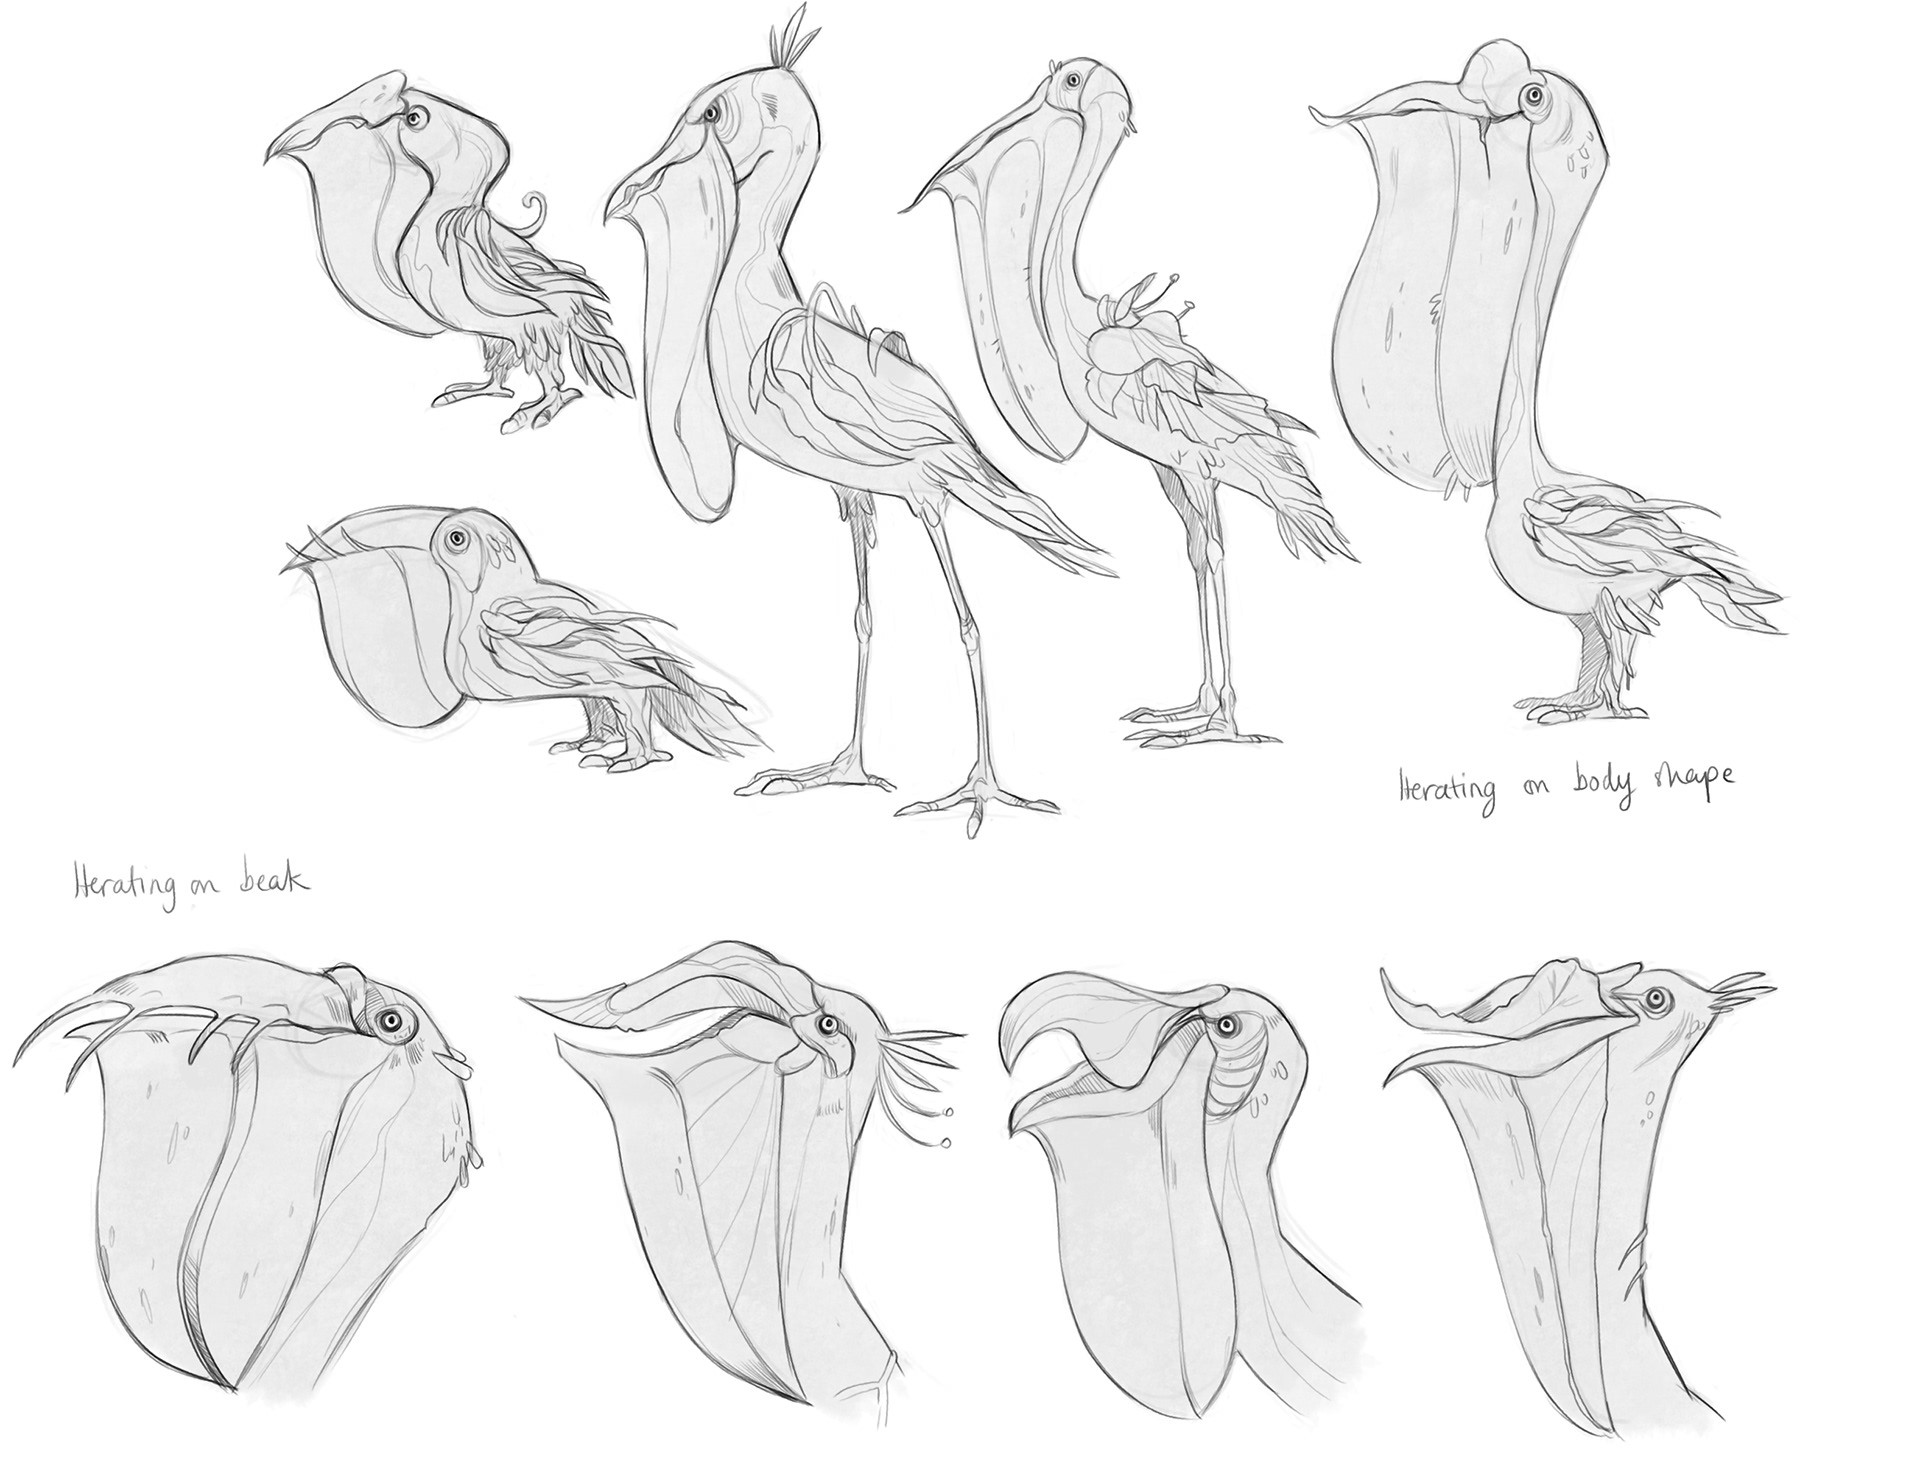 Iteration on pelican idea